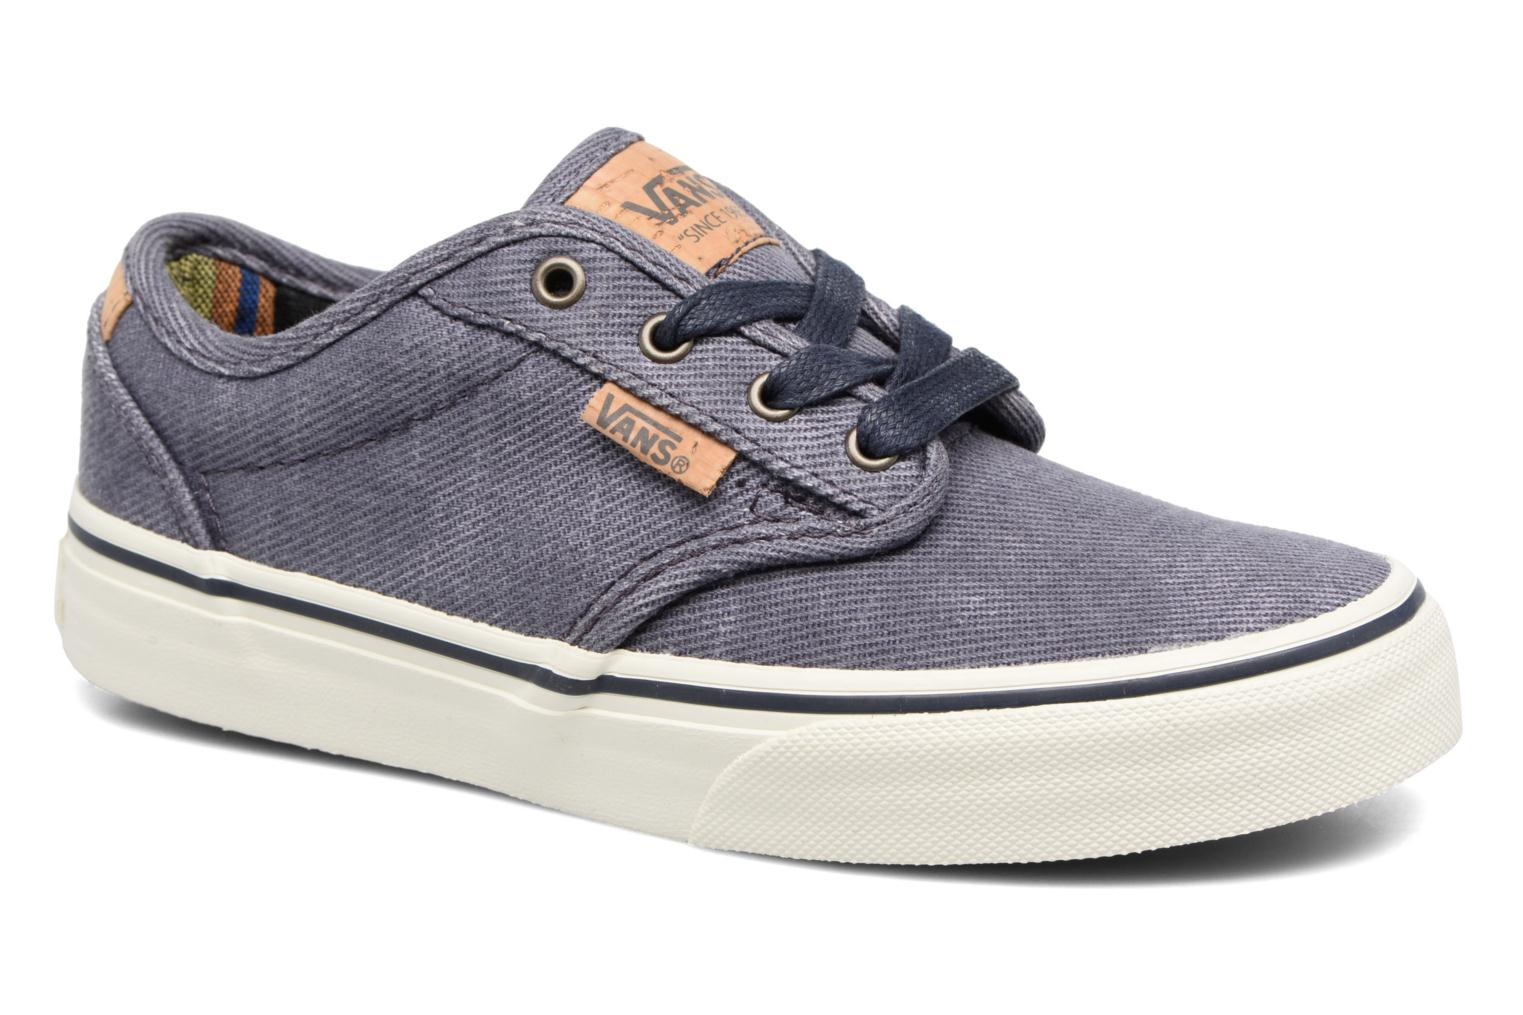 Atwood Deluxe (Washed Twill) Navy/Marshmallow